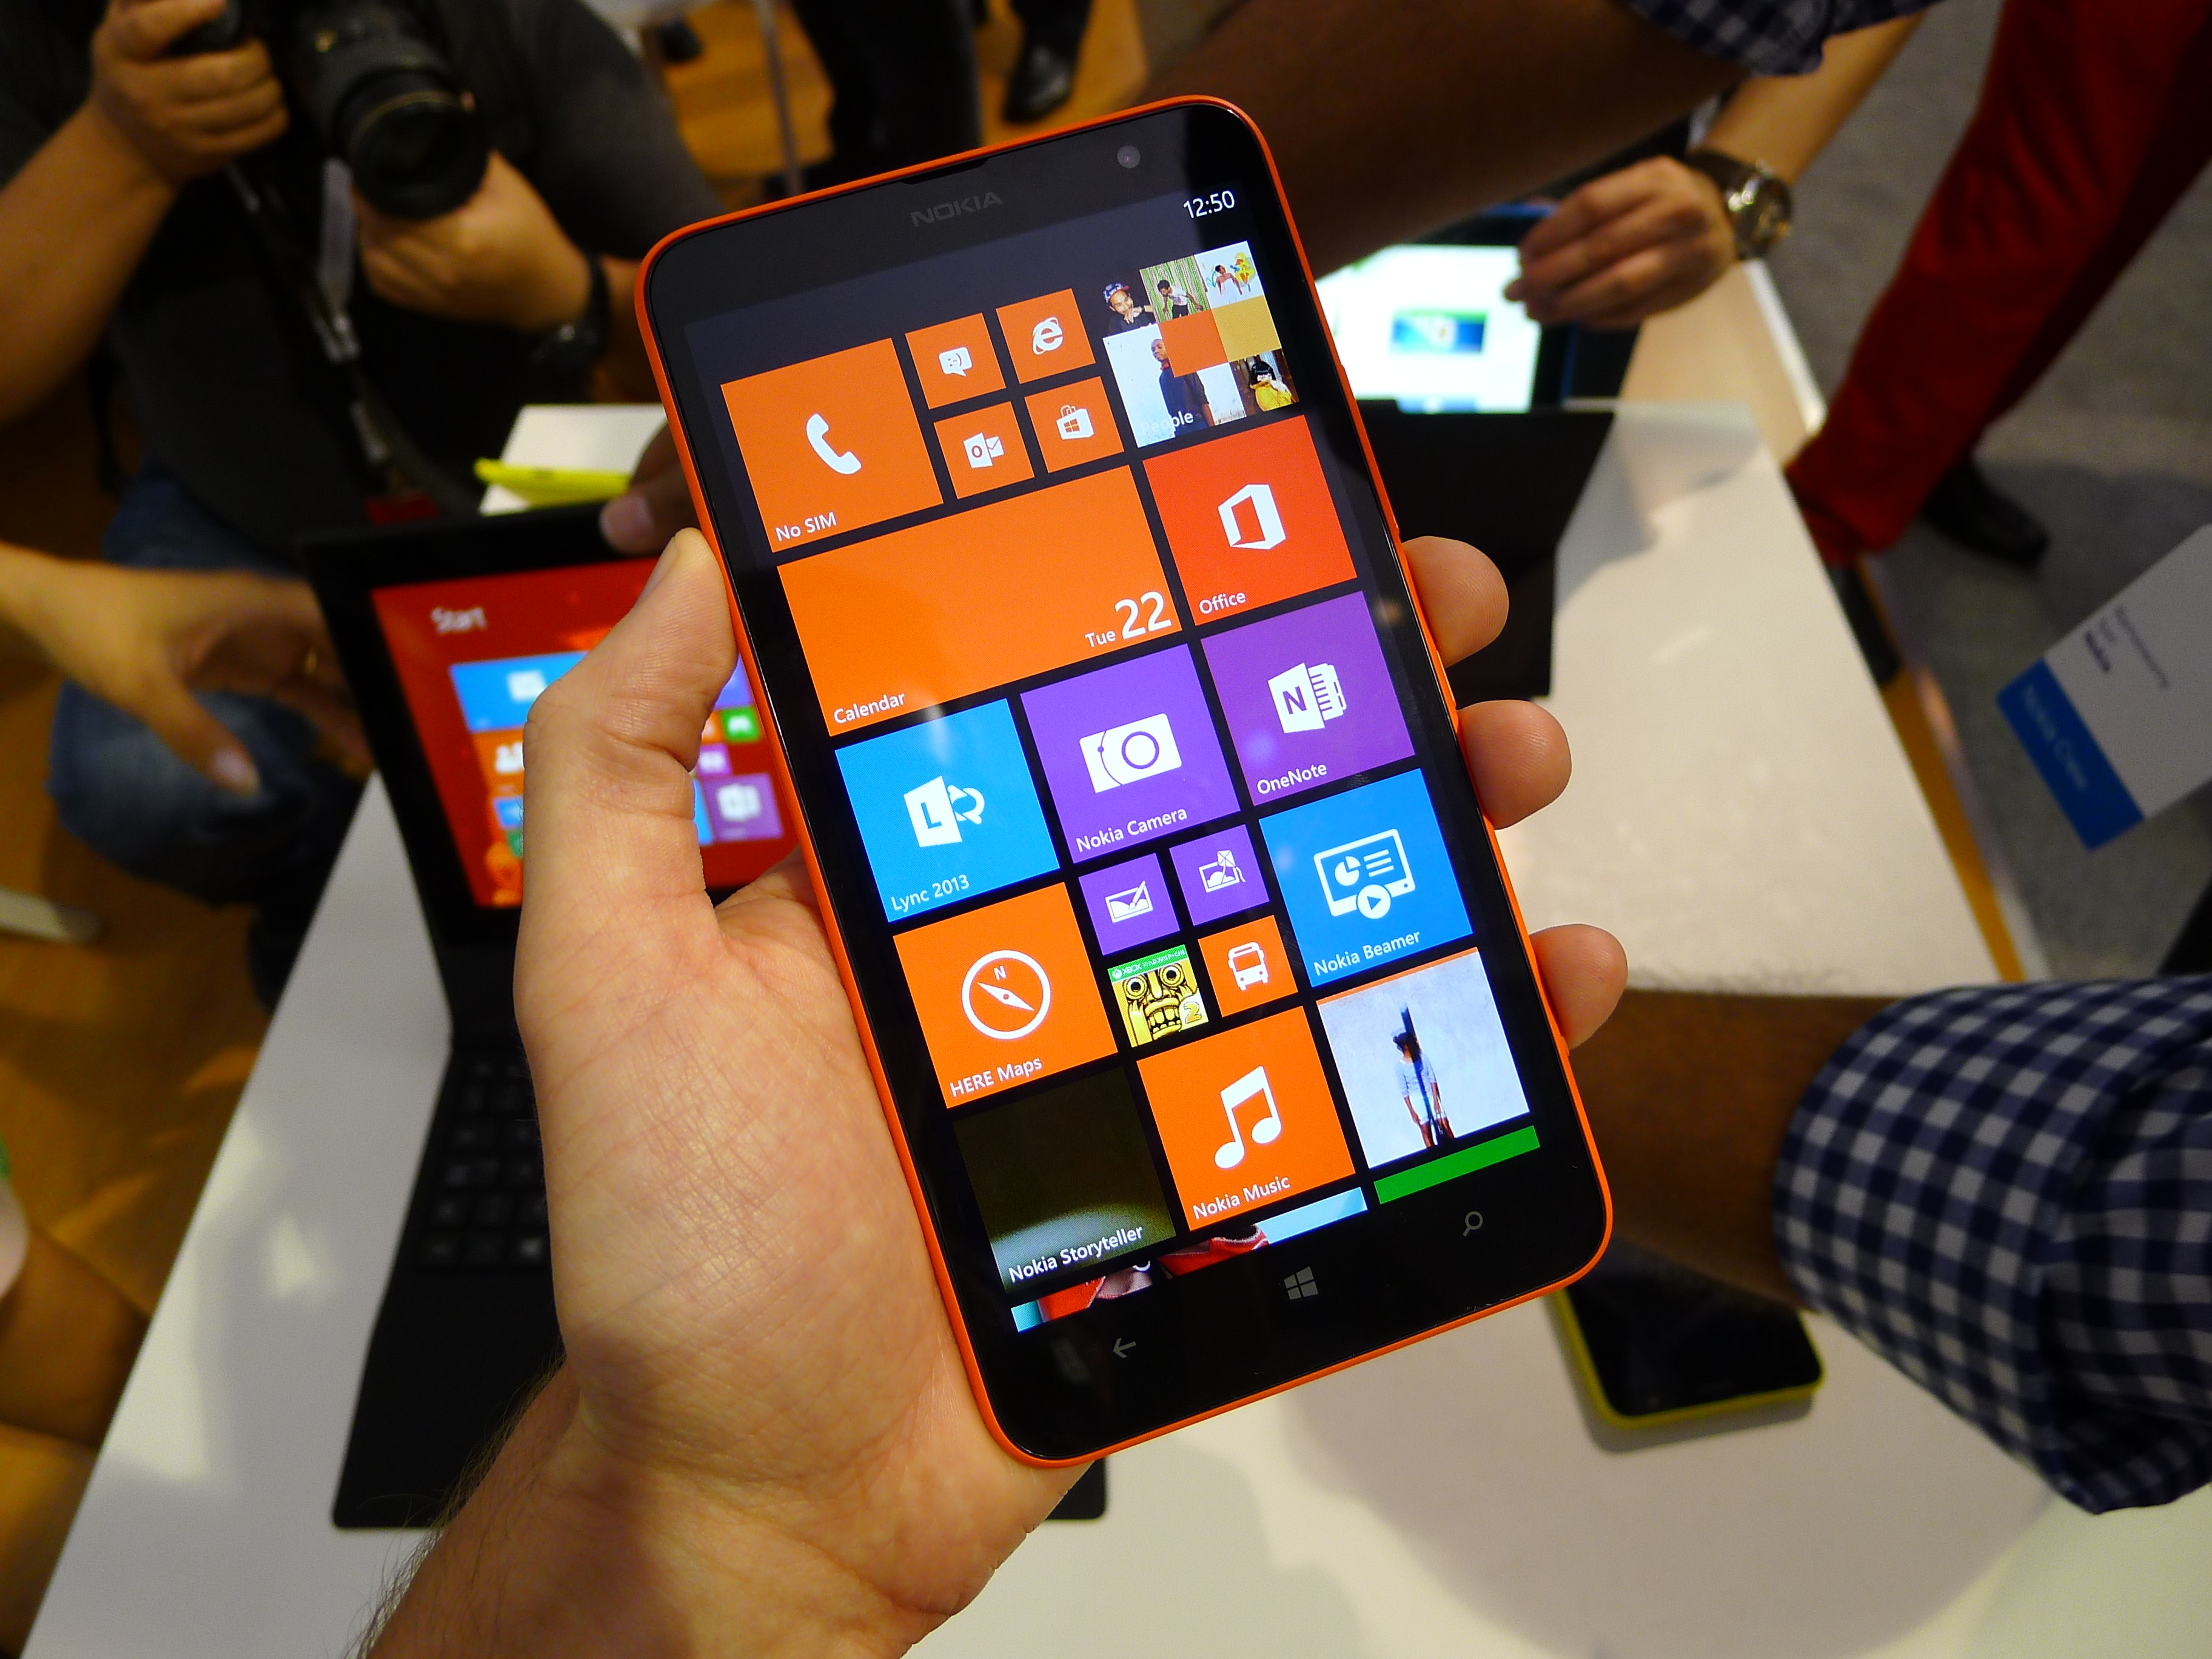 P1040500 Nokia Lumia 1320 hands on: How does this 6, 720p smartphone stack up against the Lumia 1520?